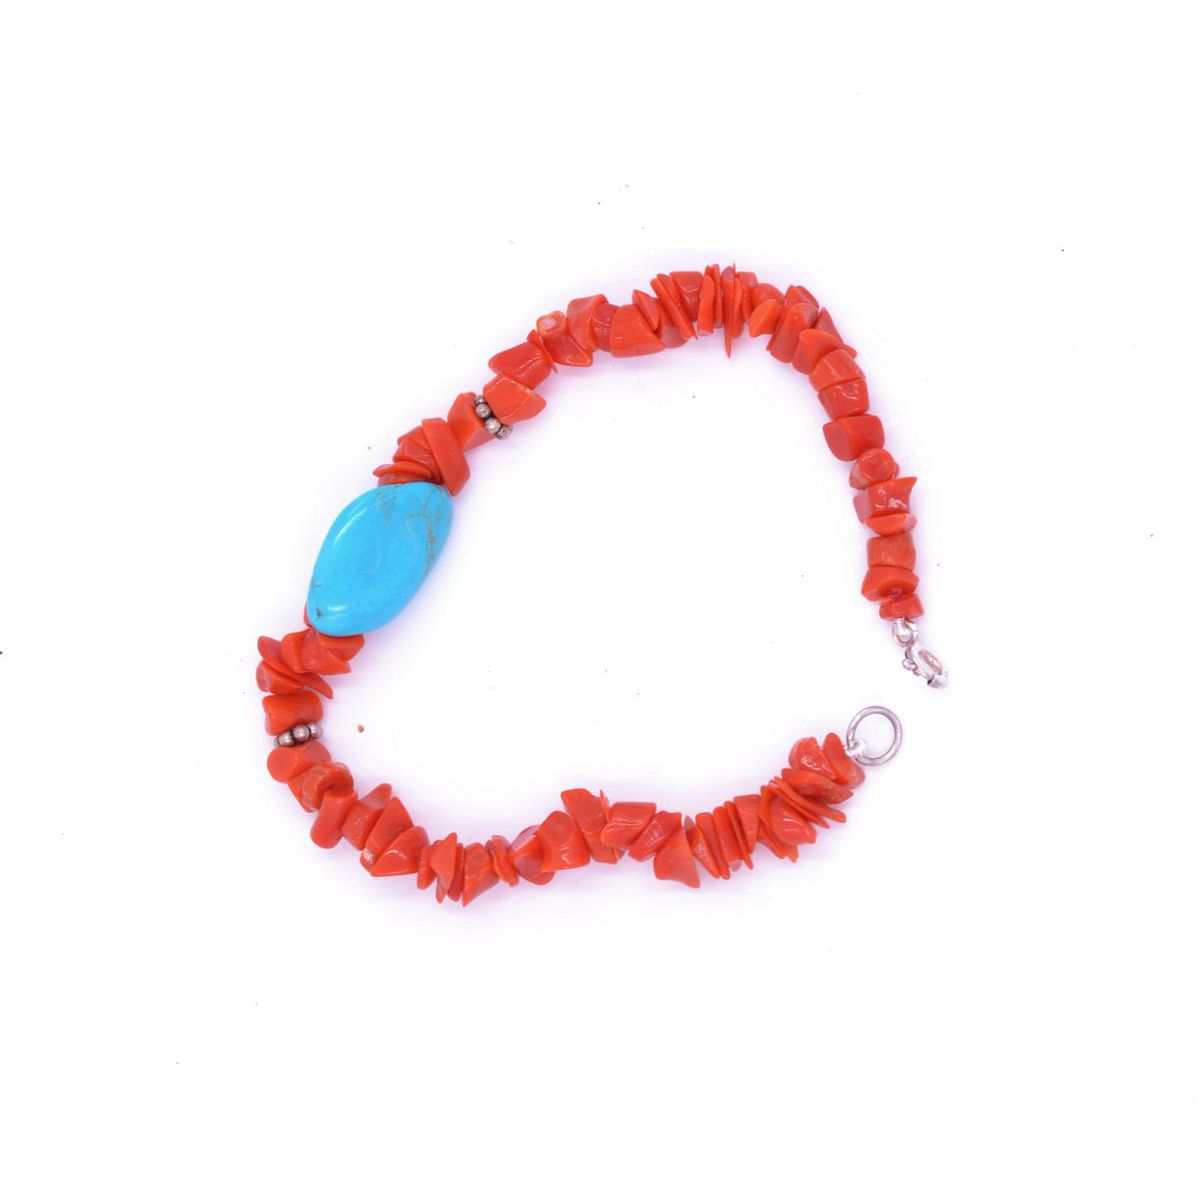 CORAL BRACELET WITH TURQUOISE STONE Red BRASS Gioielli